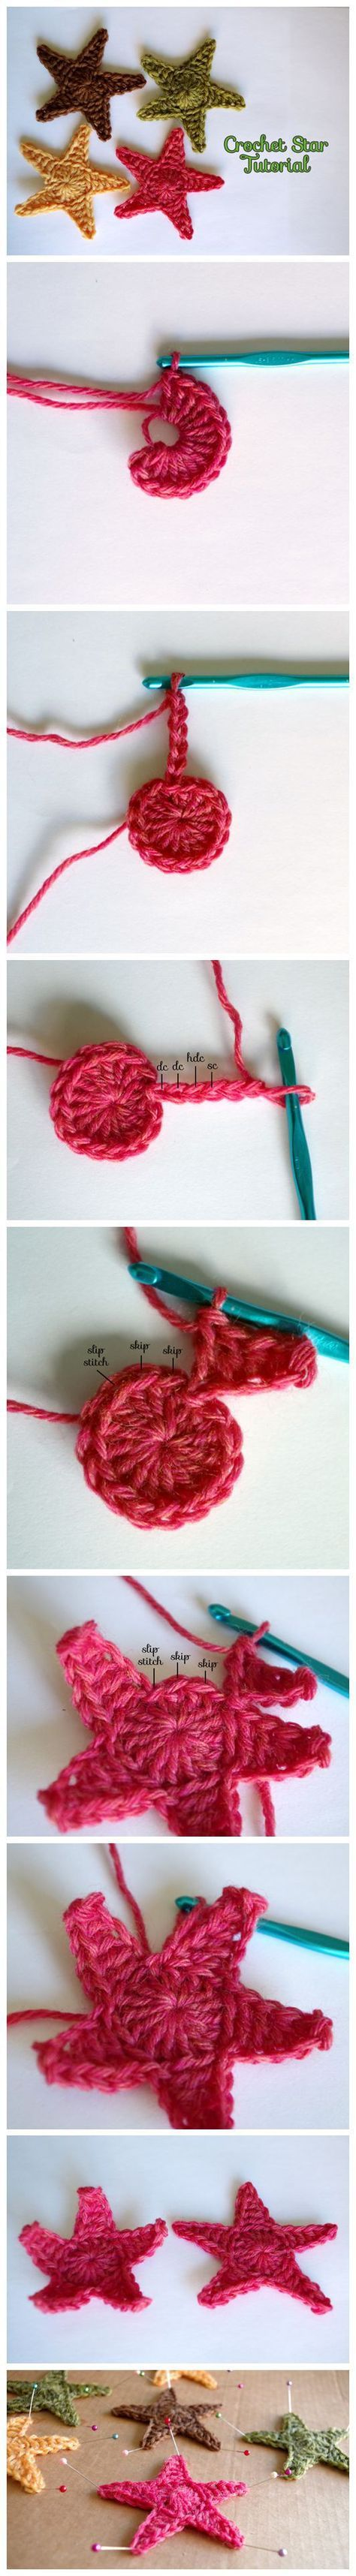 How to make a crochet star                                                                                                                                                                                 More